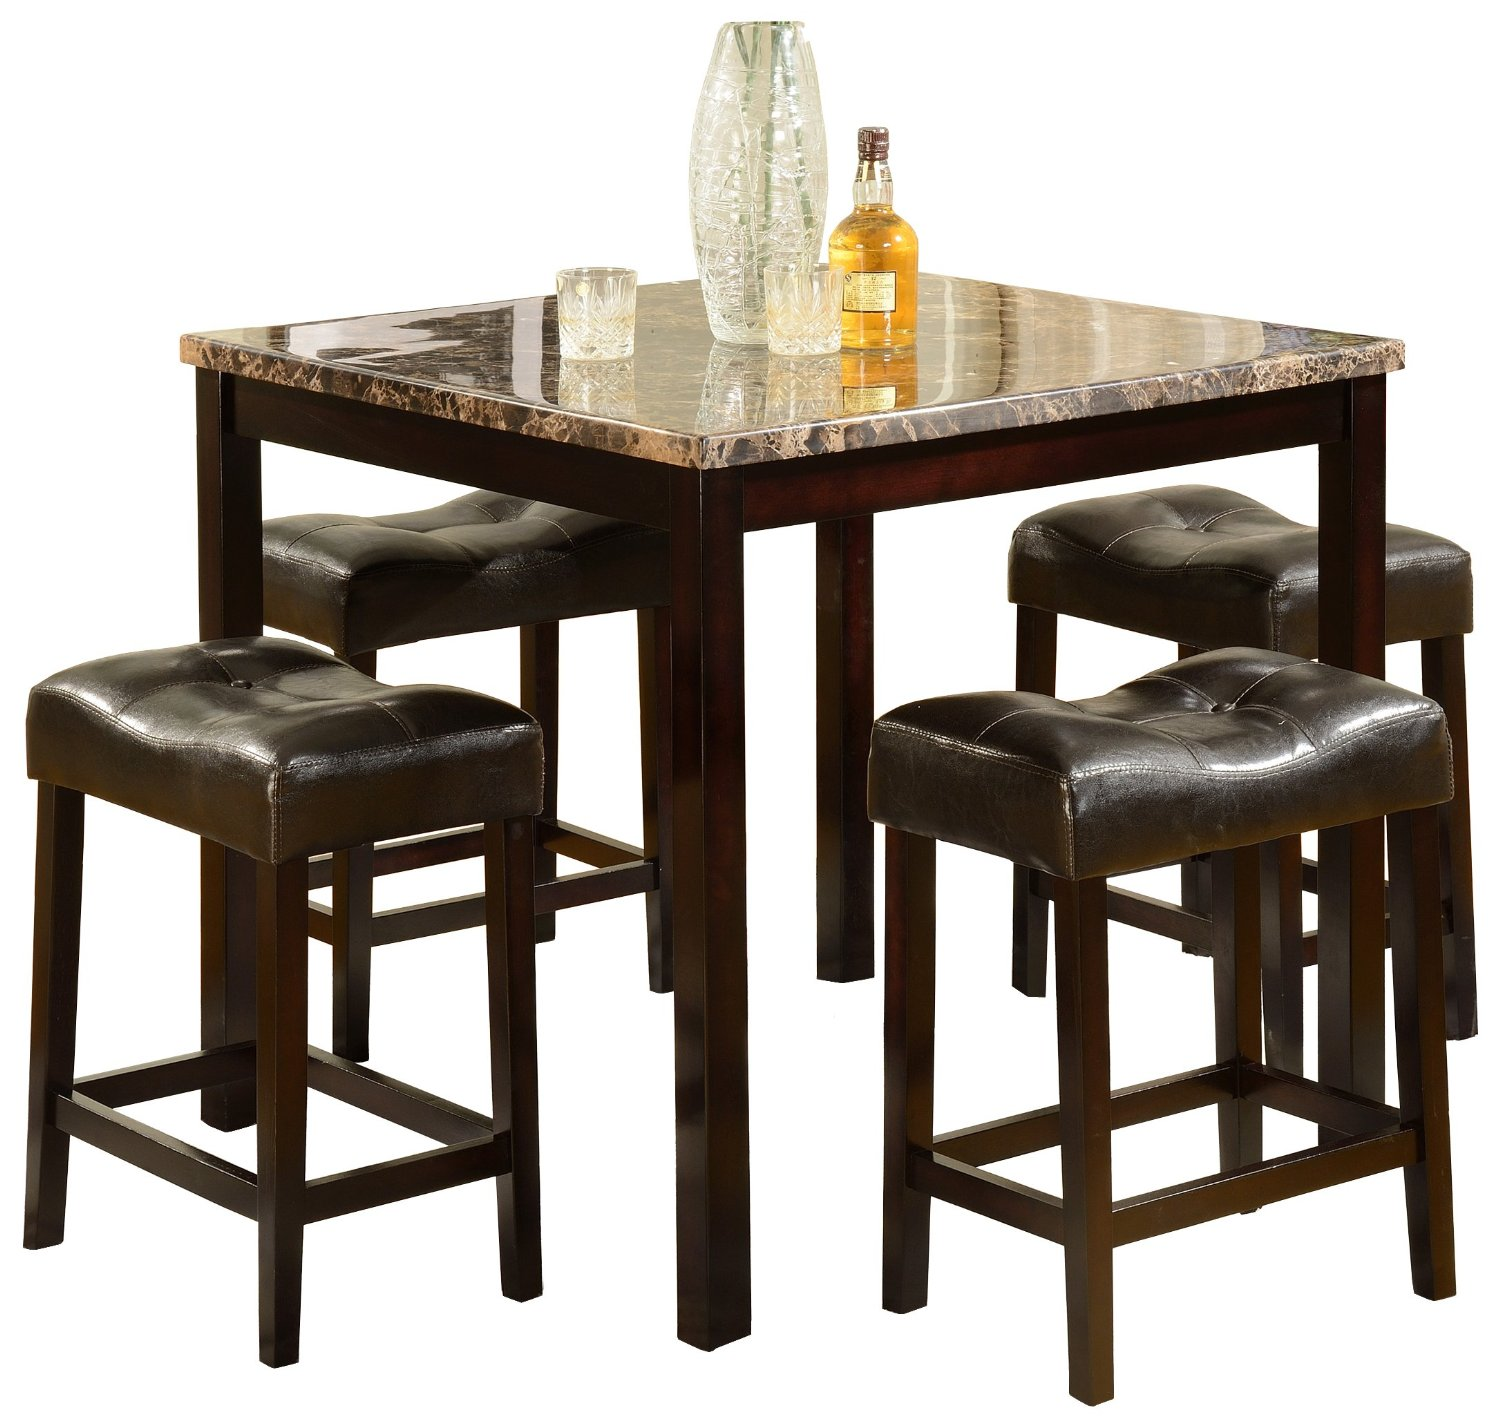 High Table With Stools: High Top Table Sets To Create An Entertaining Dining Space